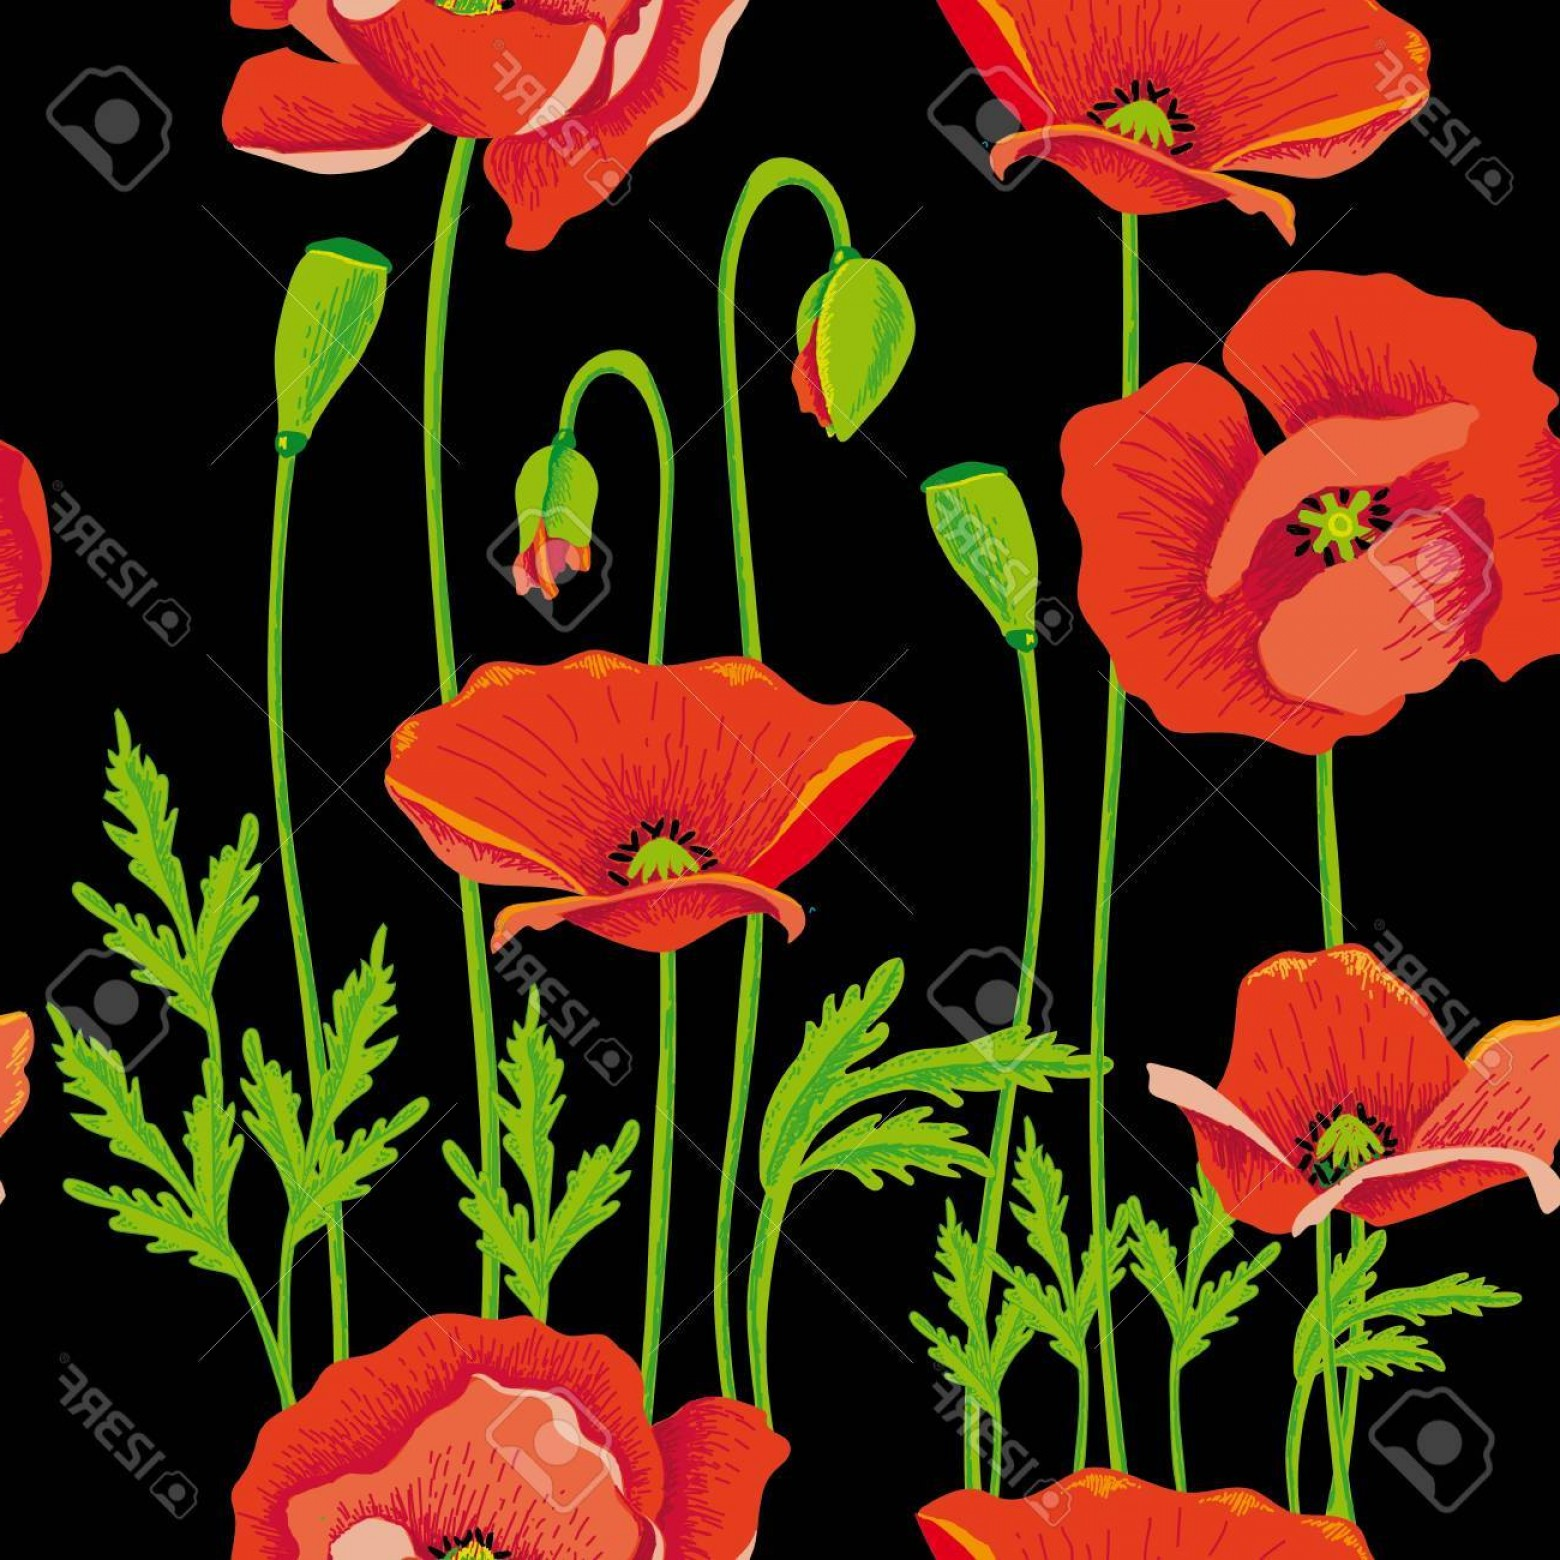 Vector Flower Band: Photostock Vector Seamless Vector Floral Band At Dark Paper Rich And Natural